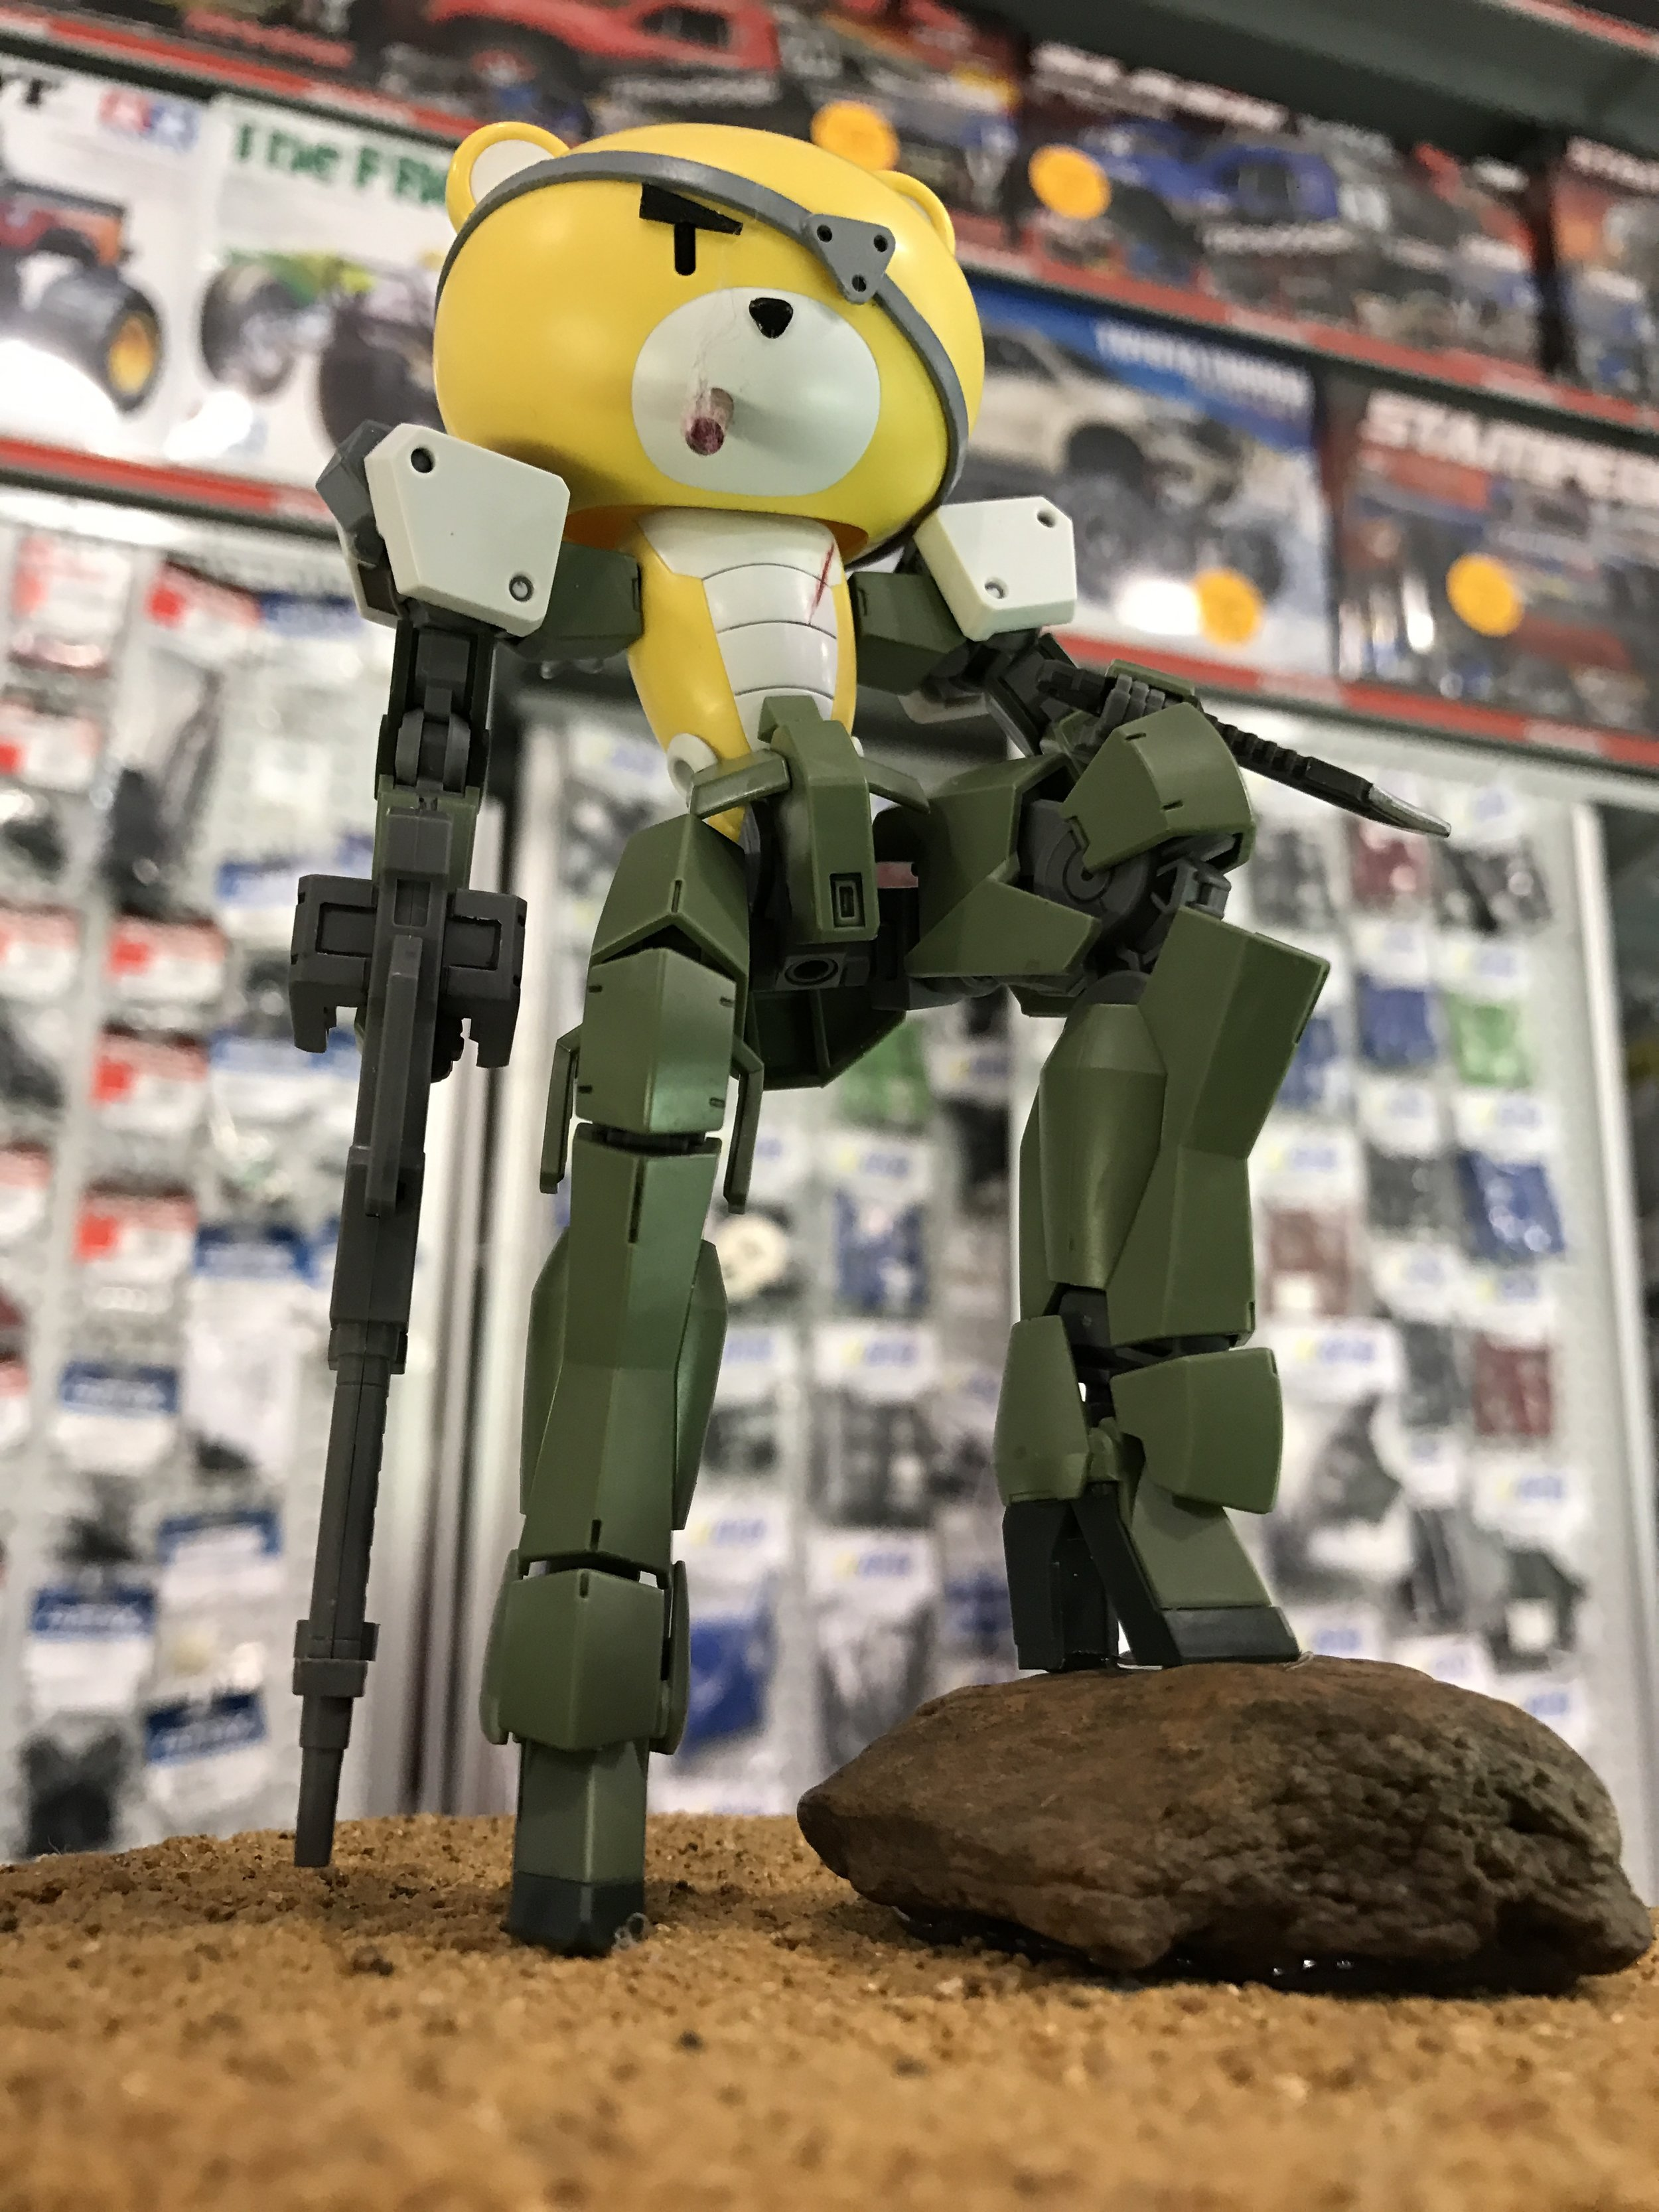 """""""PetitegGraze"""" Took third place. The kit(s) itself isn't painted (or if it if it is, only in small areas) or detailed very much but the eye patch, cigar and wound on the chest says everything you need to know. The concept and flawless posing leaps out at you and more than compensates for the lack of finer detail. This piece demonstrates that you don't always need to pour hundreds of hours into modeling to get something that is unique, interesting and an expression of an artistic vision; what really matters is clean execution of a clear vision."""